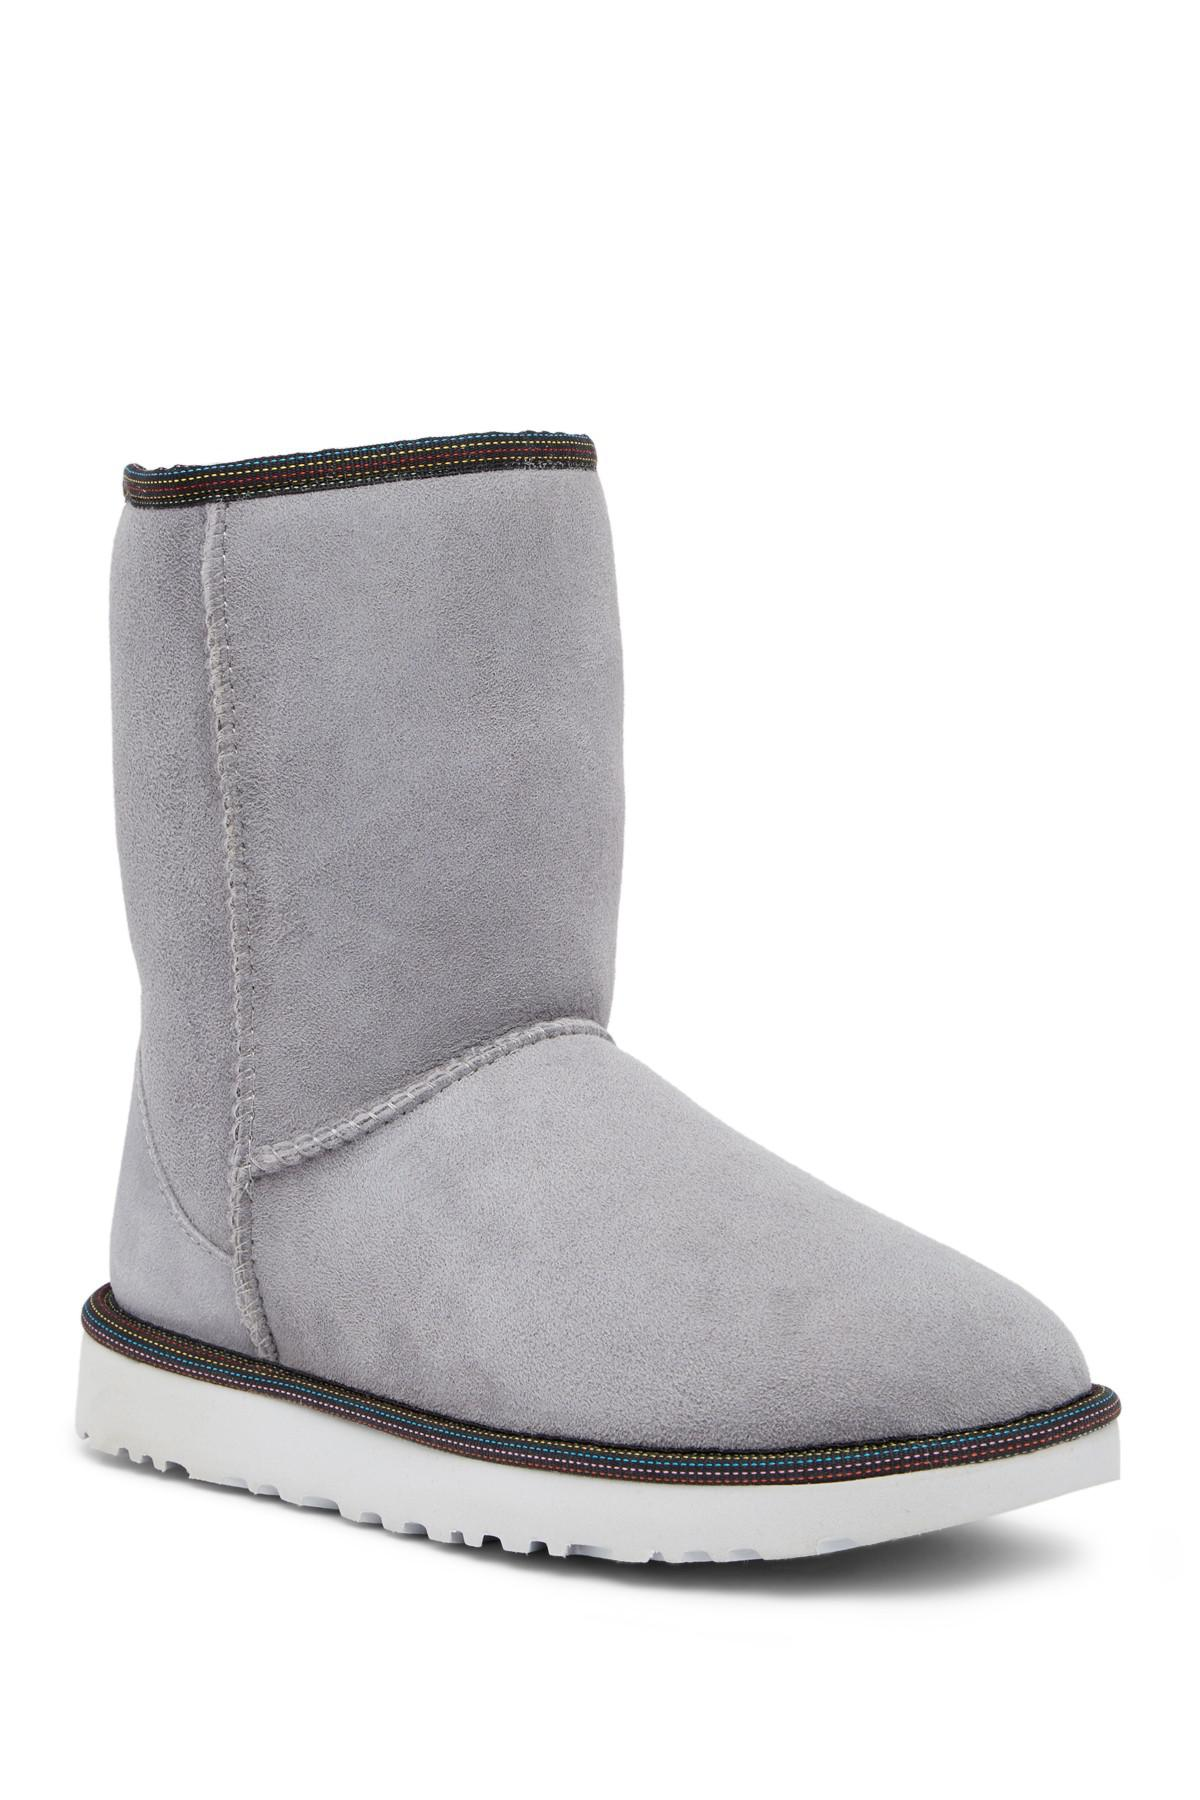 984be444212 closeout ugg classic short weave ce30b 4c557